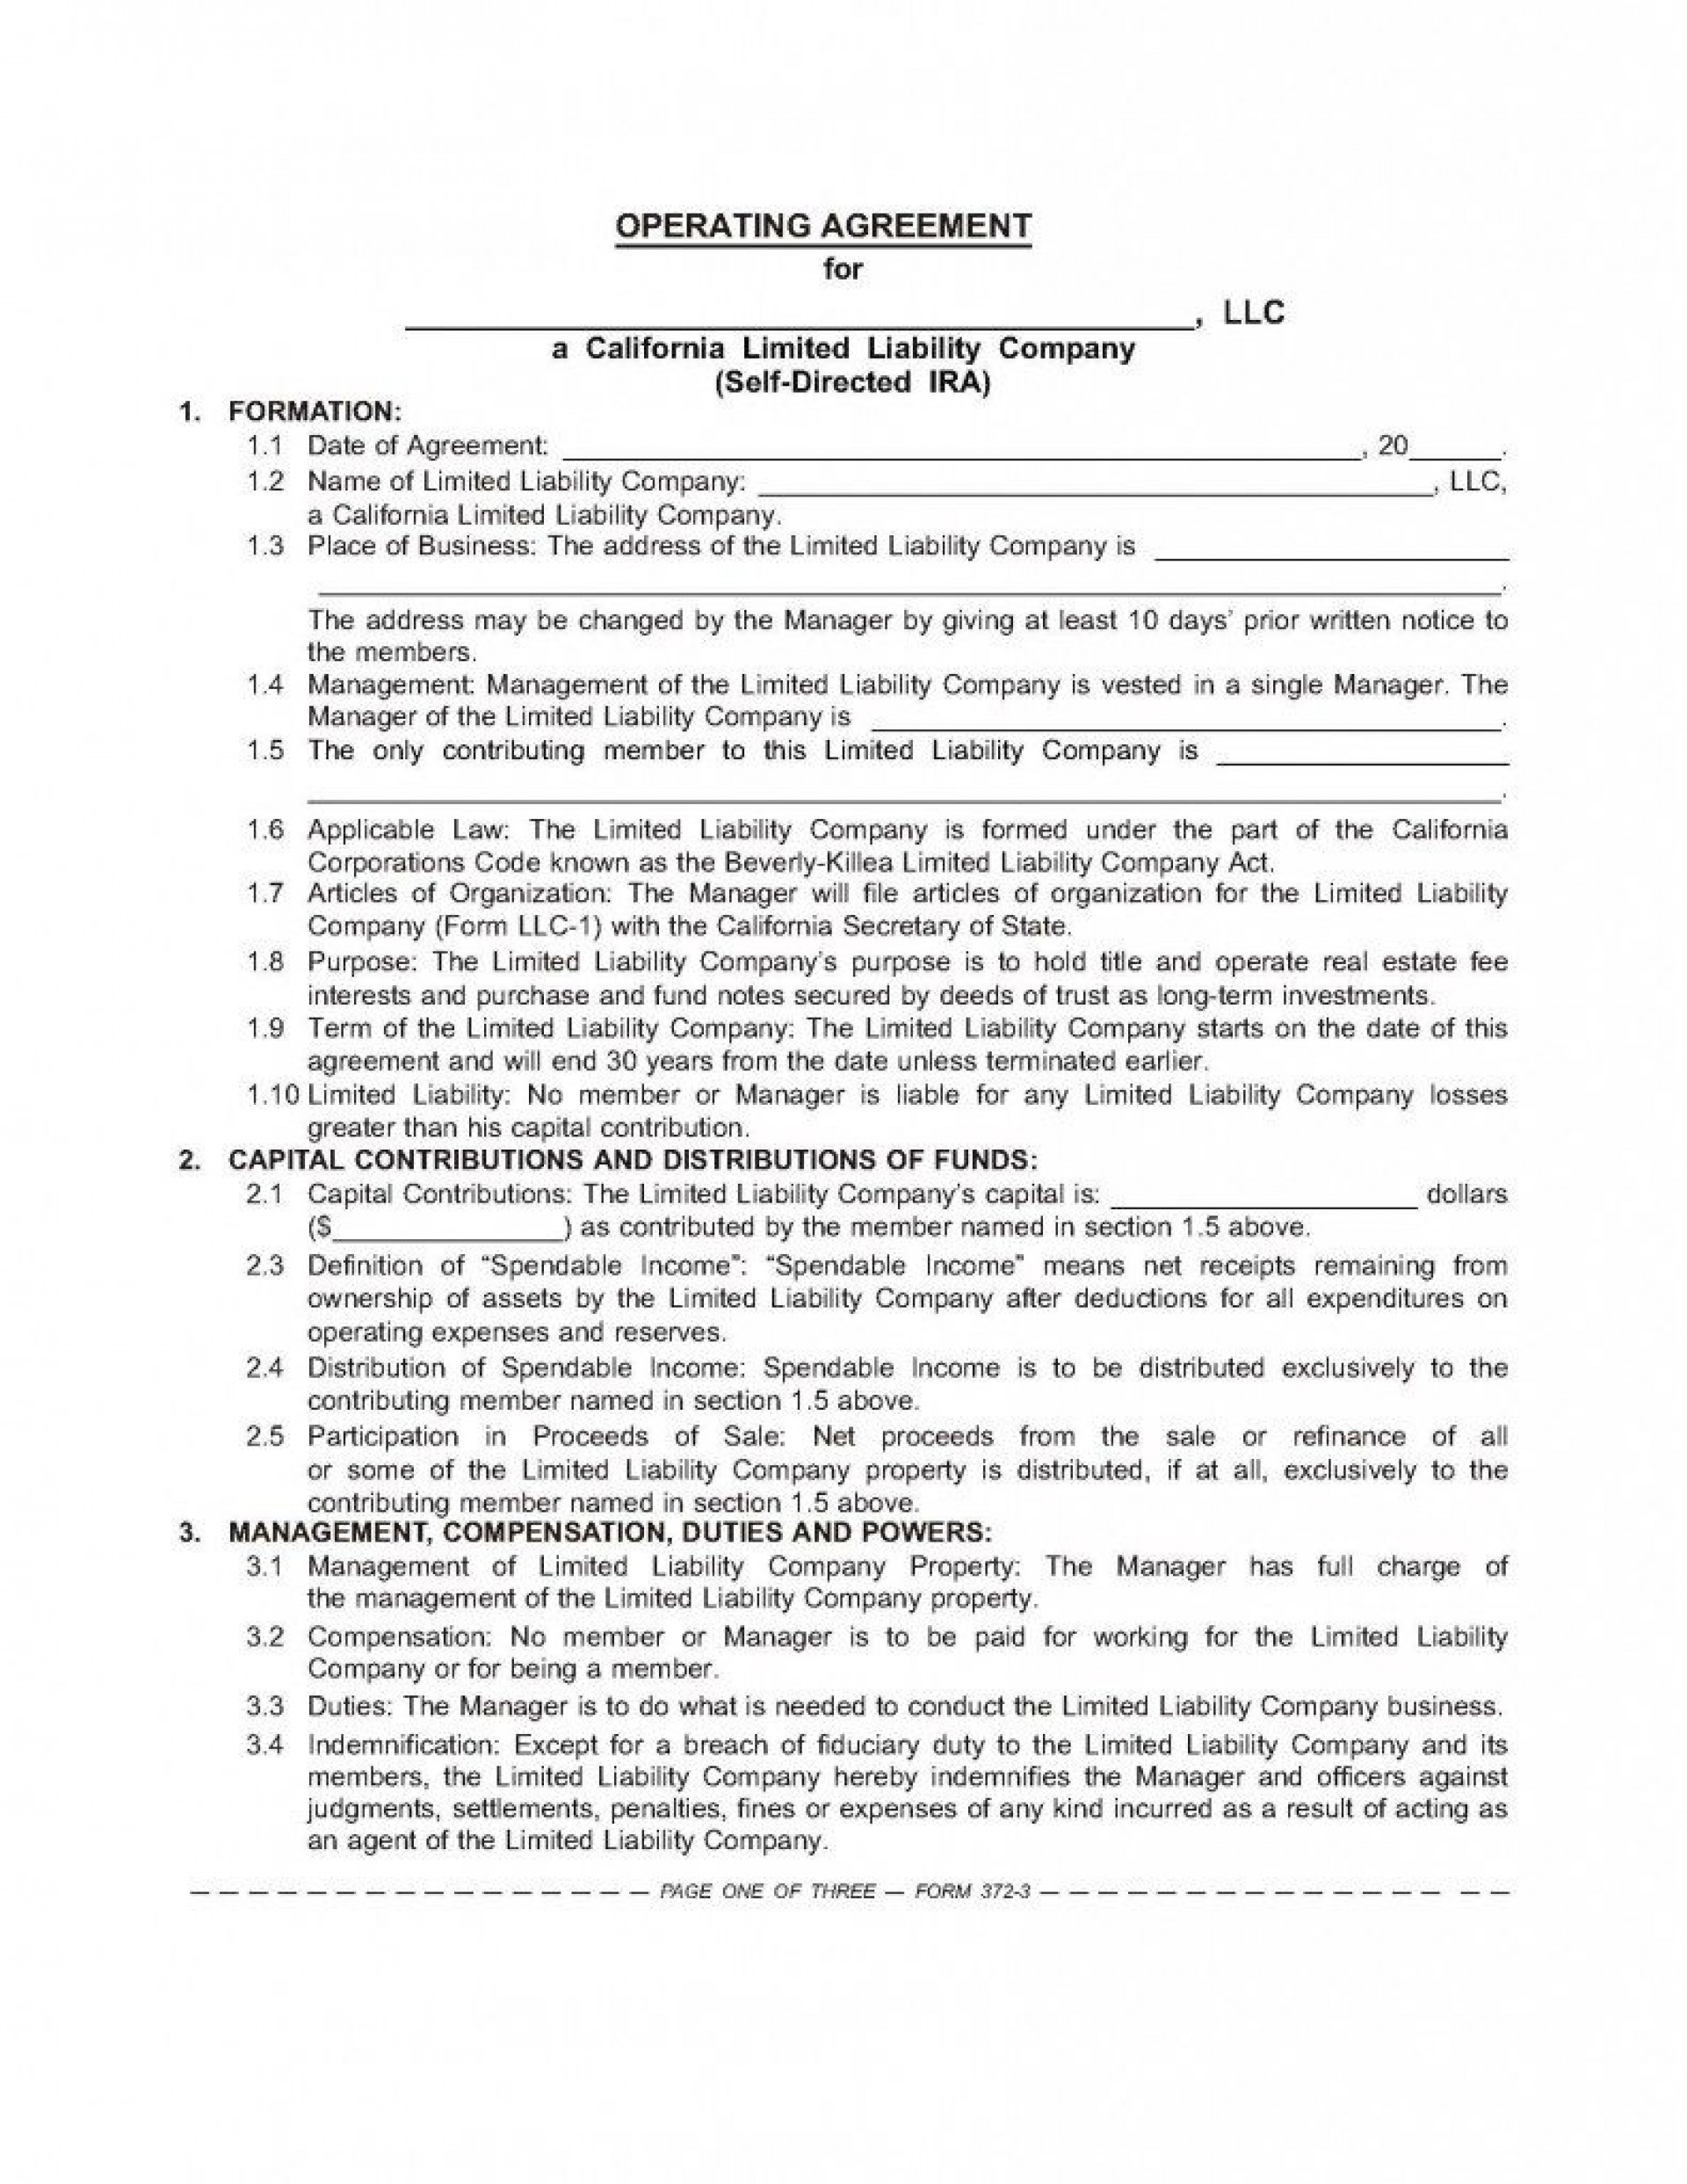 001 Incredible Operating Agreement Template For Llc Highest Quality  Form Florida Texa1920